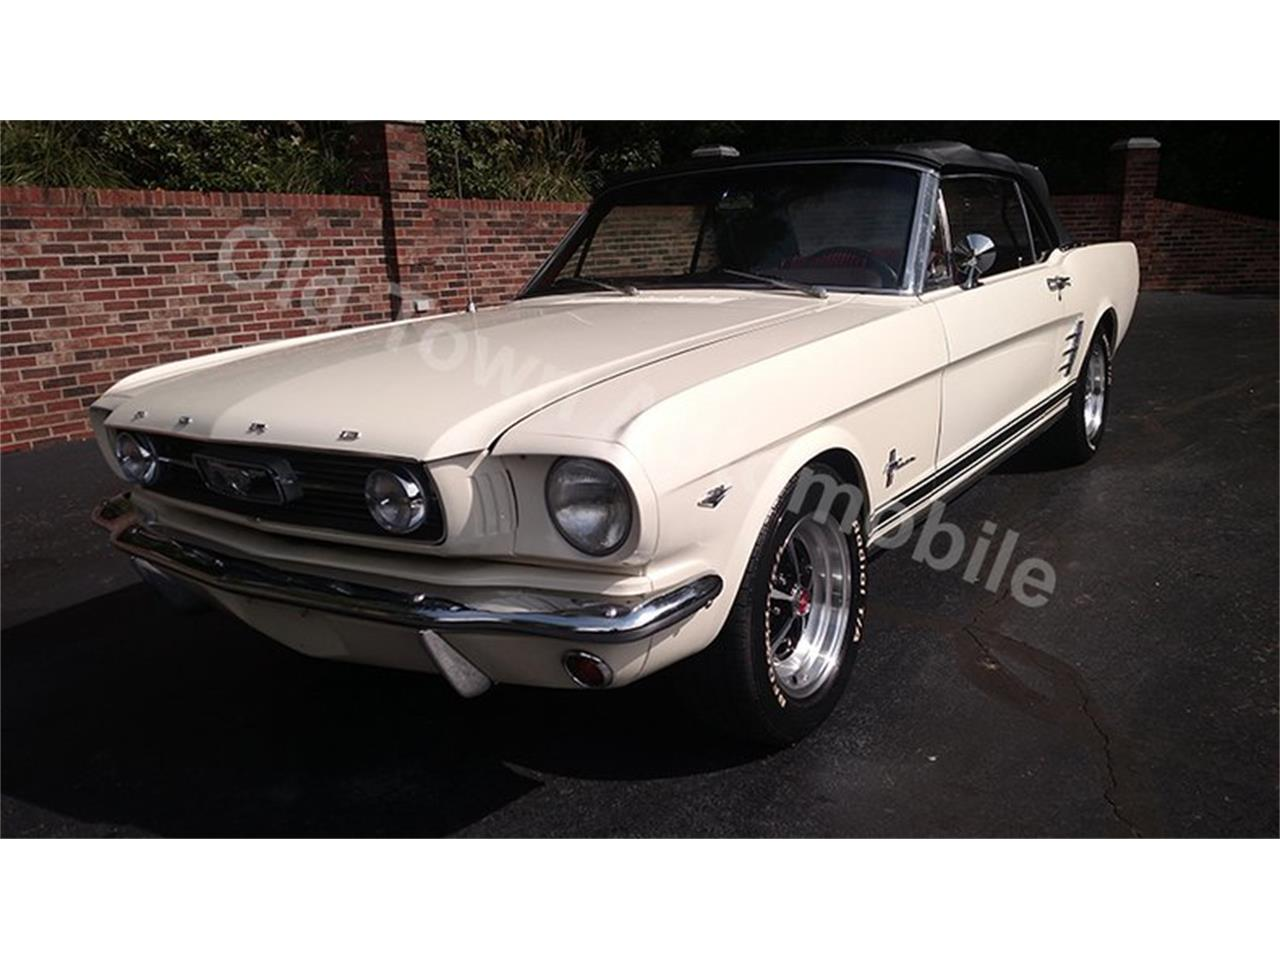 Large picture of classic 1966 ford mustang located in huntingtown maryland offered by old town automobile